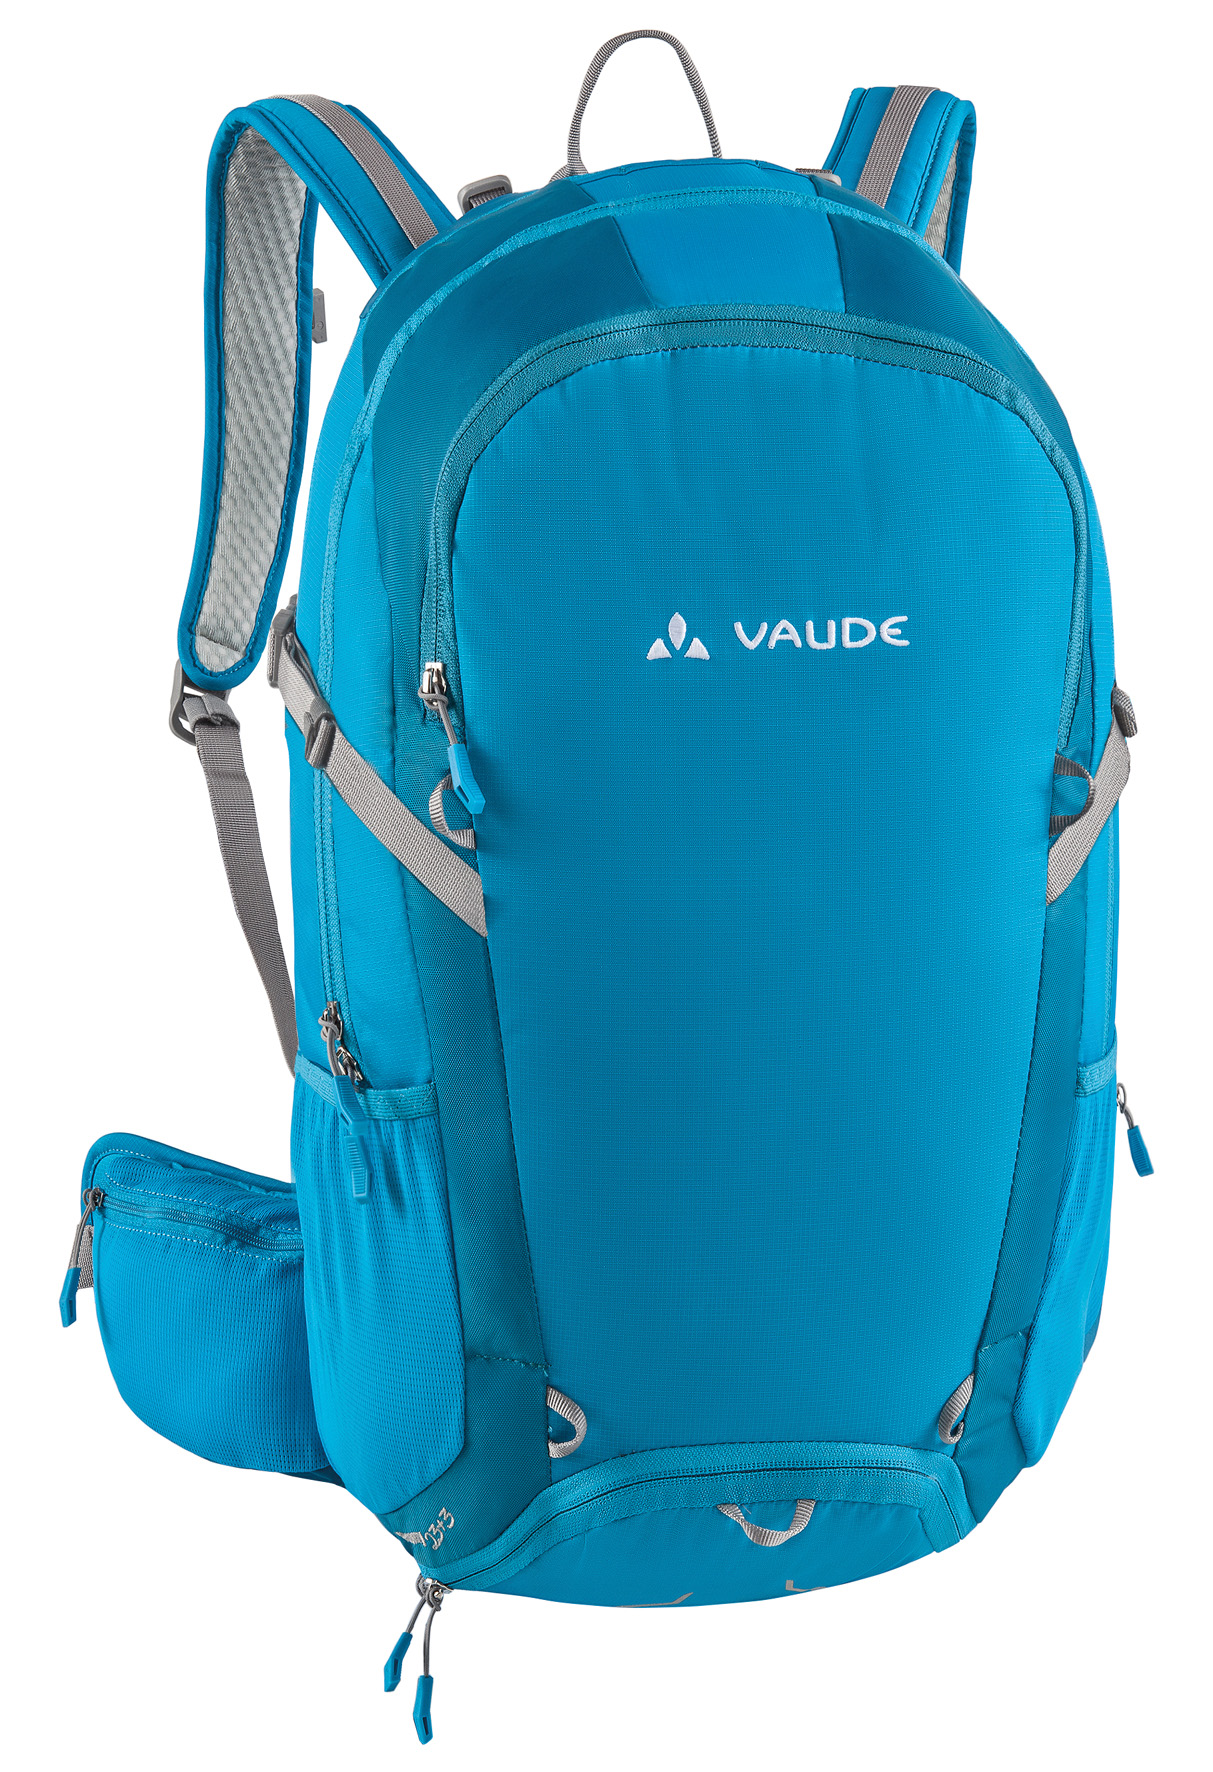 Roomy 23+3 teal blue/seablue  - schneider-sports